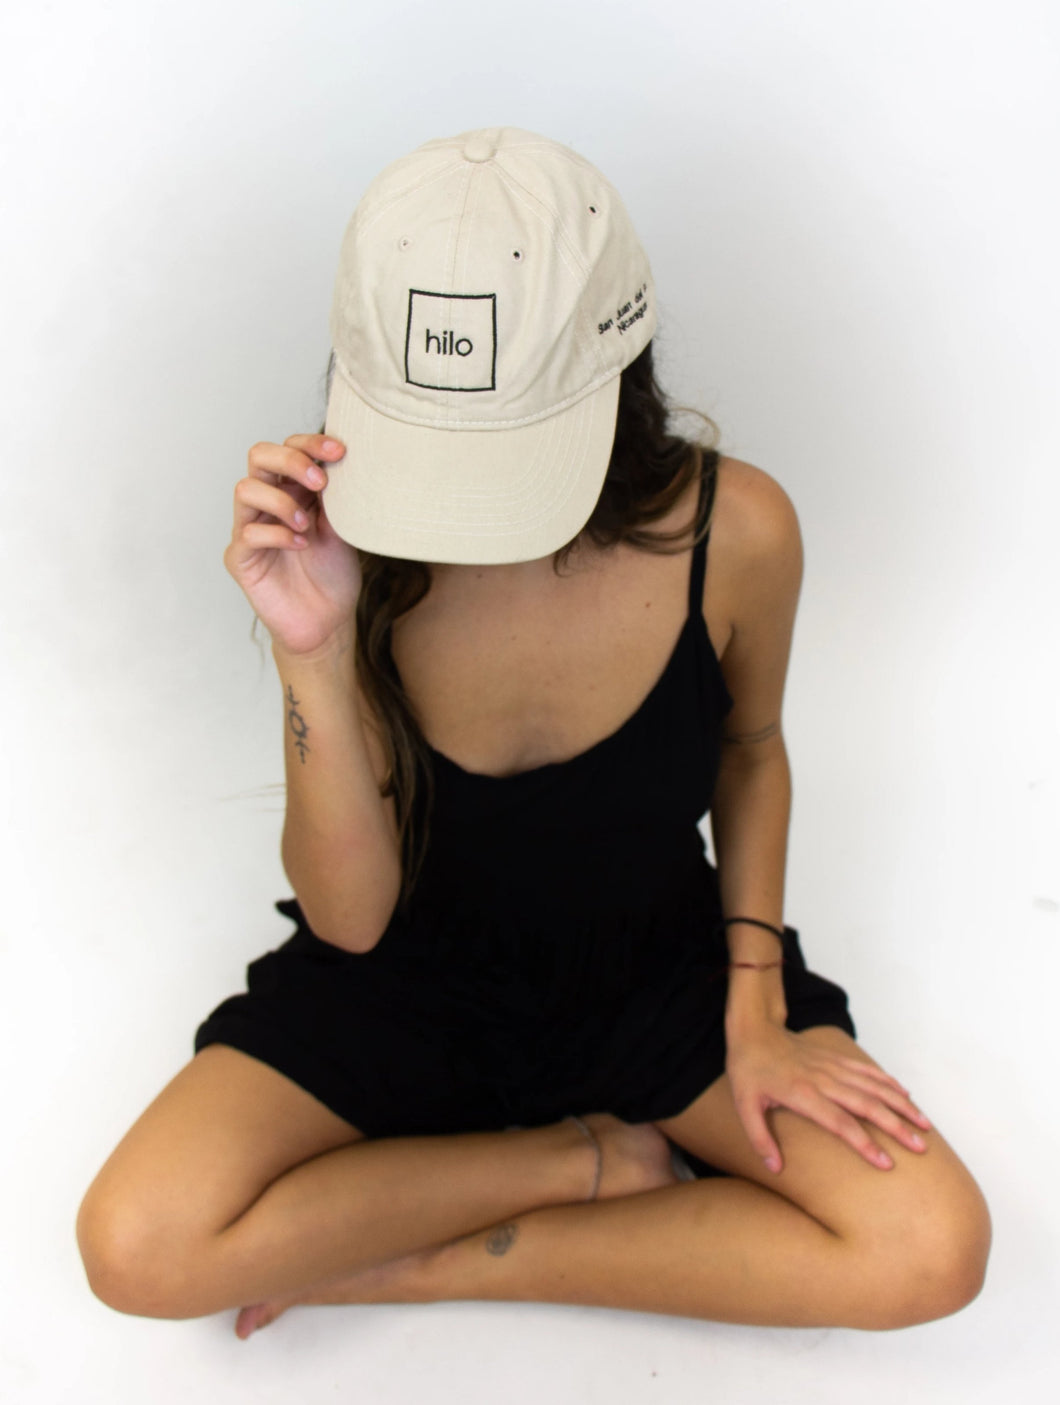 The model in this photo is wearing a black outfit with a baseball cap that has the square